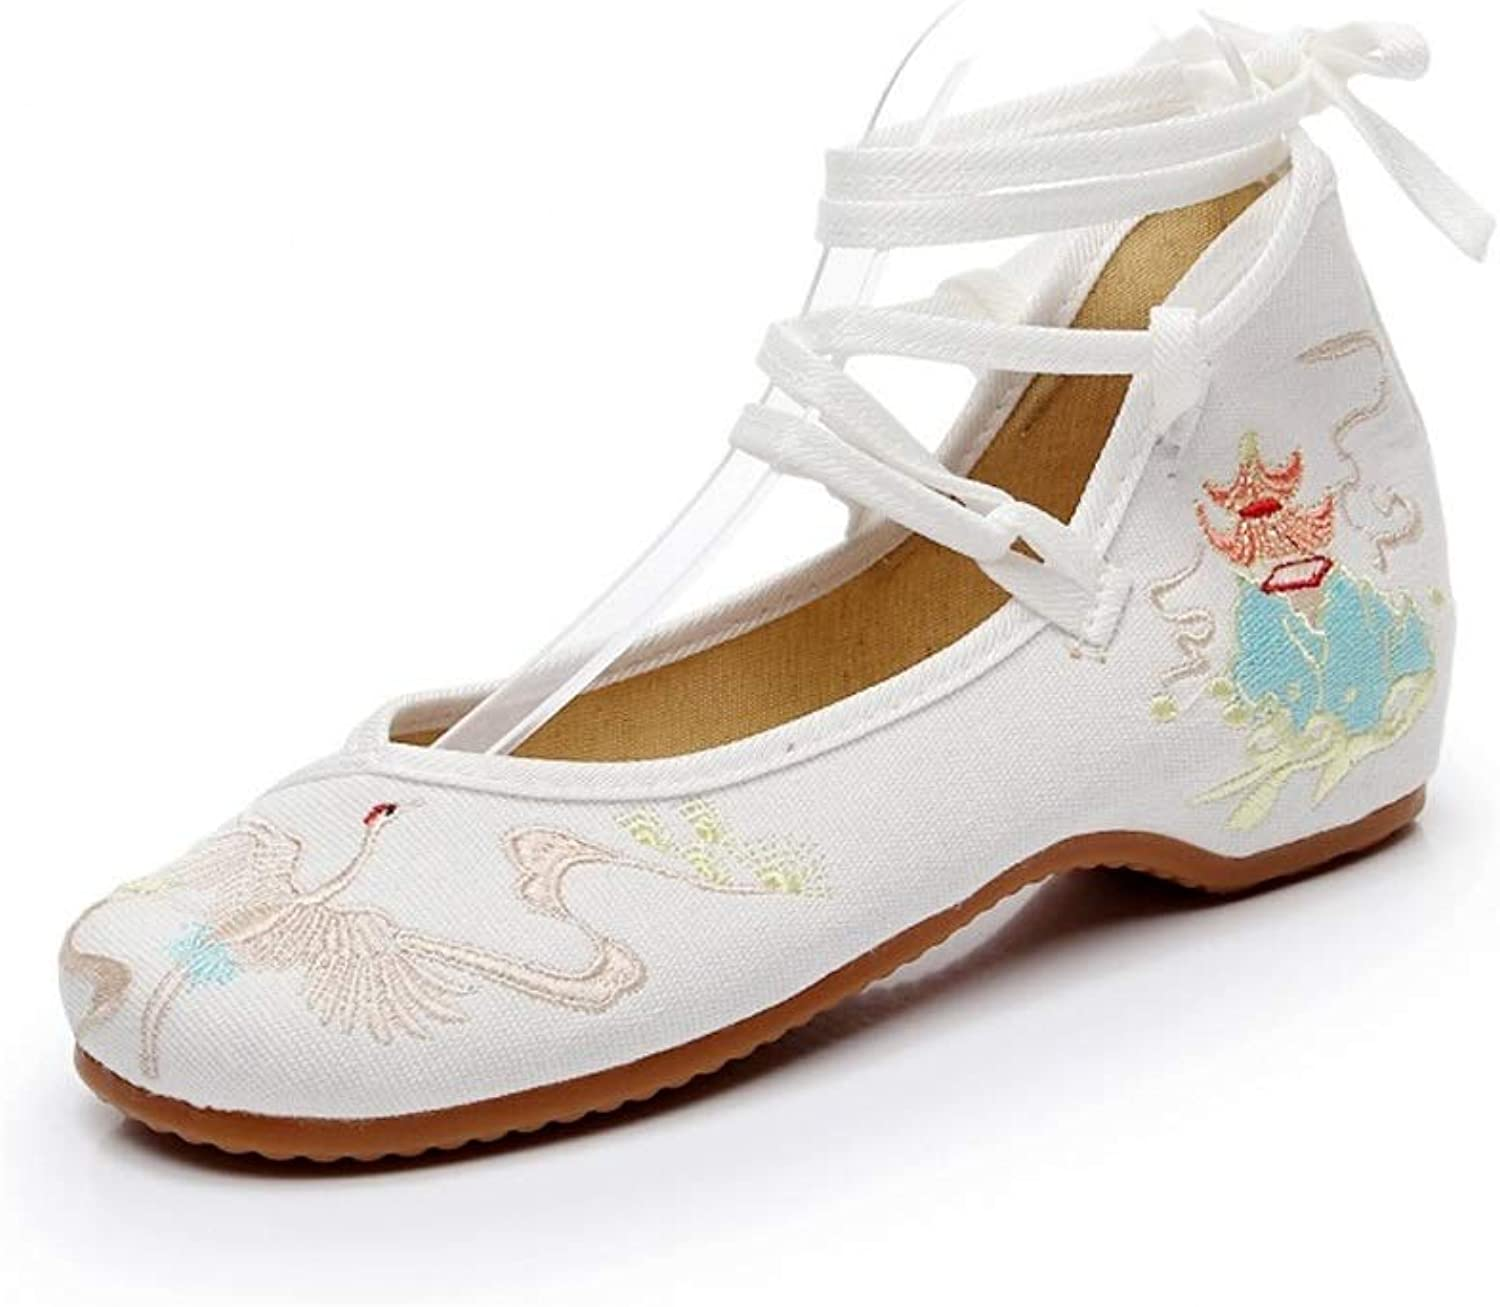 Lian shoes Old Beijing Embroidered Cloth shoes Hanfu Ancient Style Embroidered shoes Women's Breathable National Wind Women's shoes